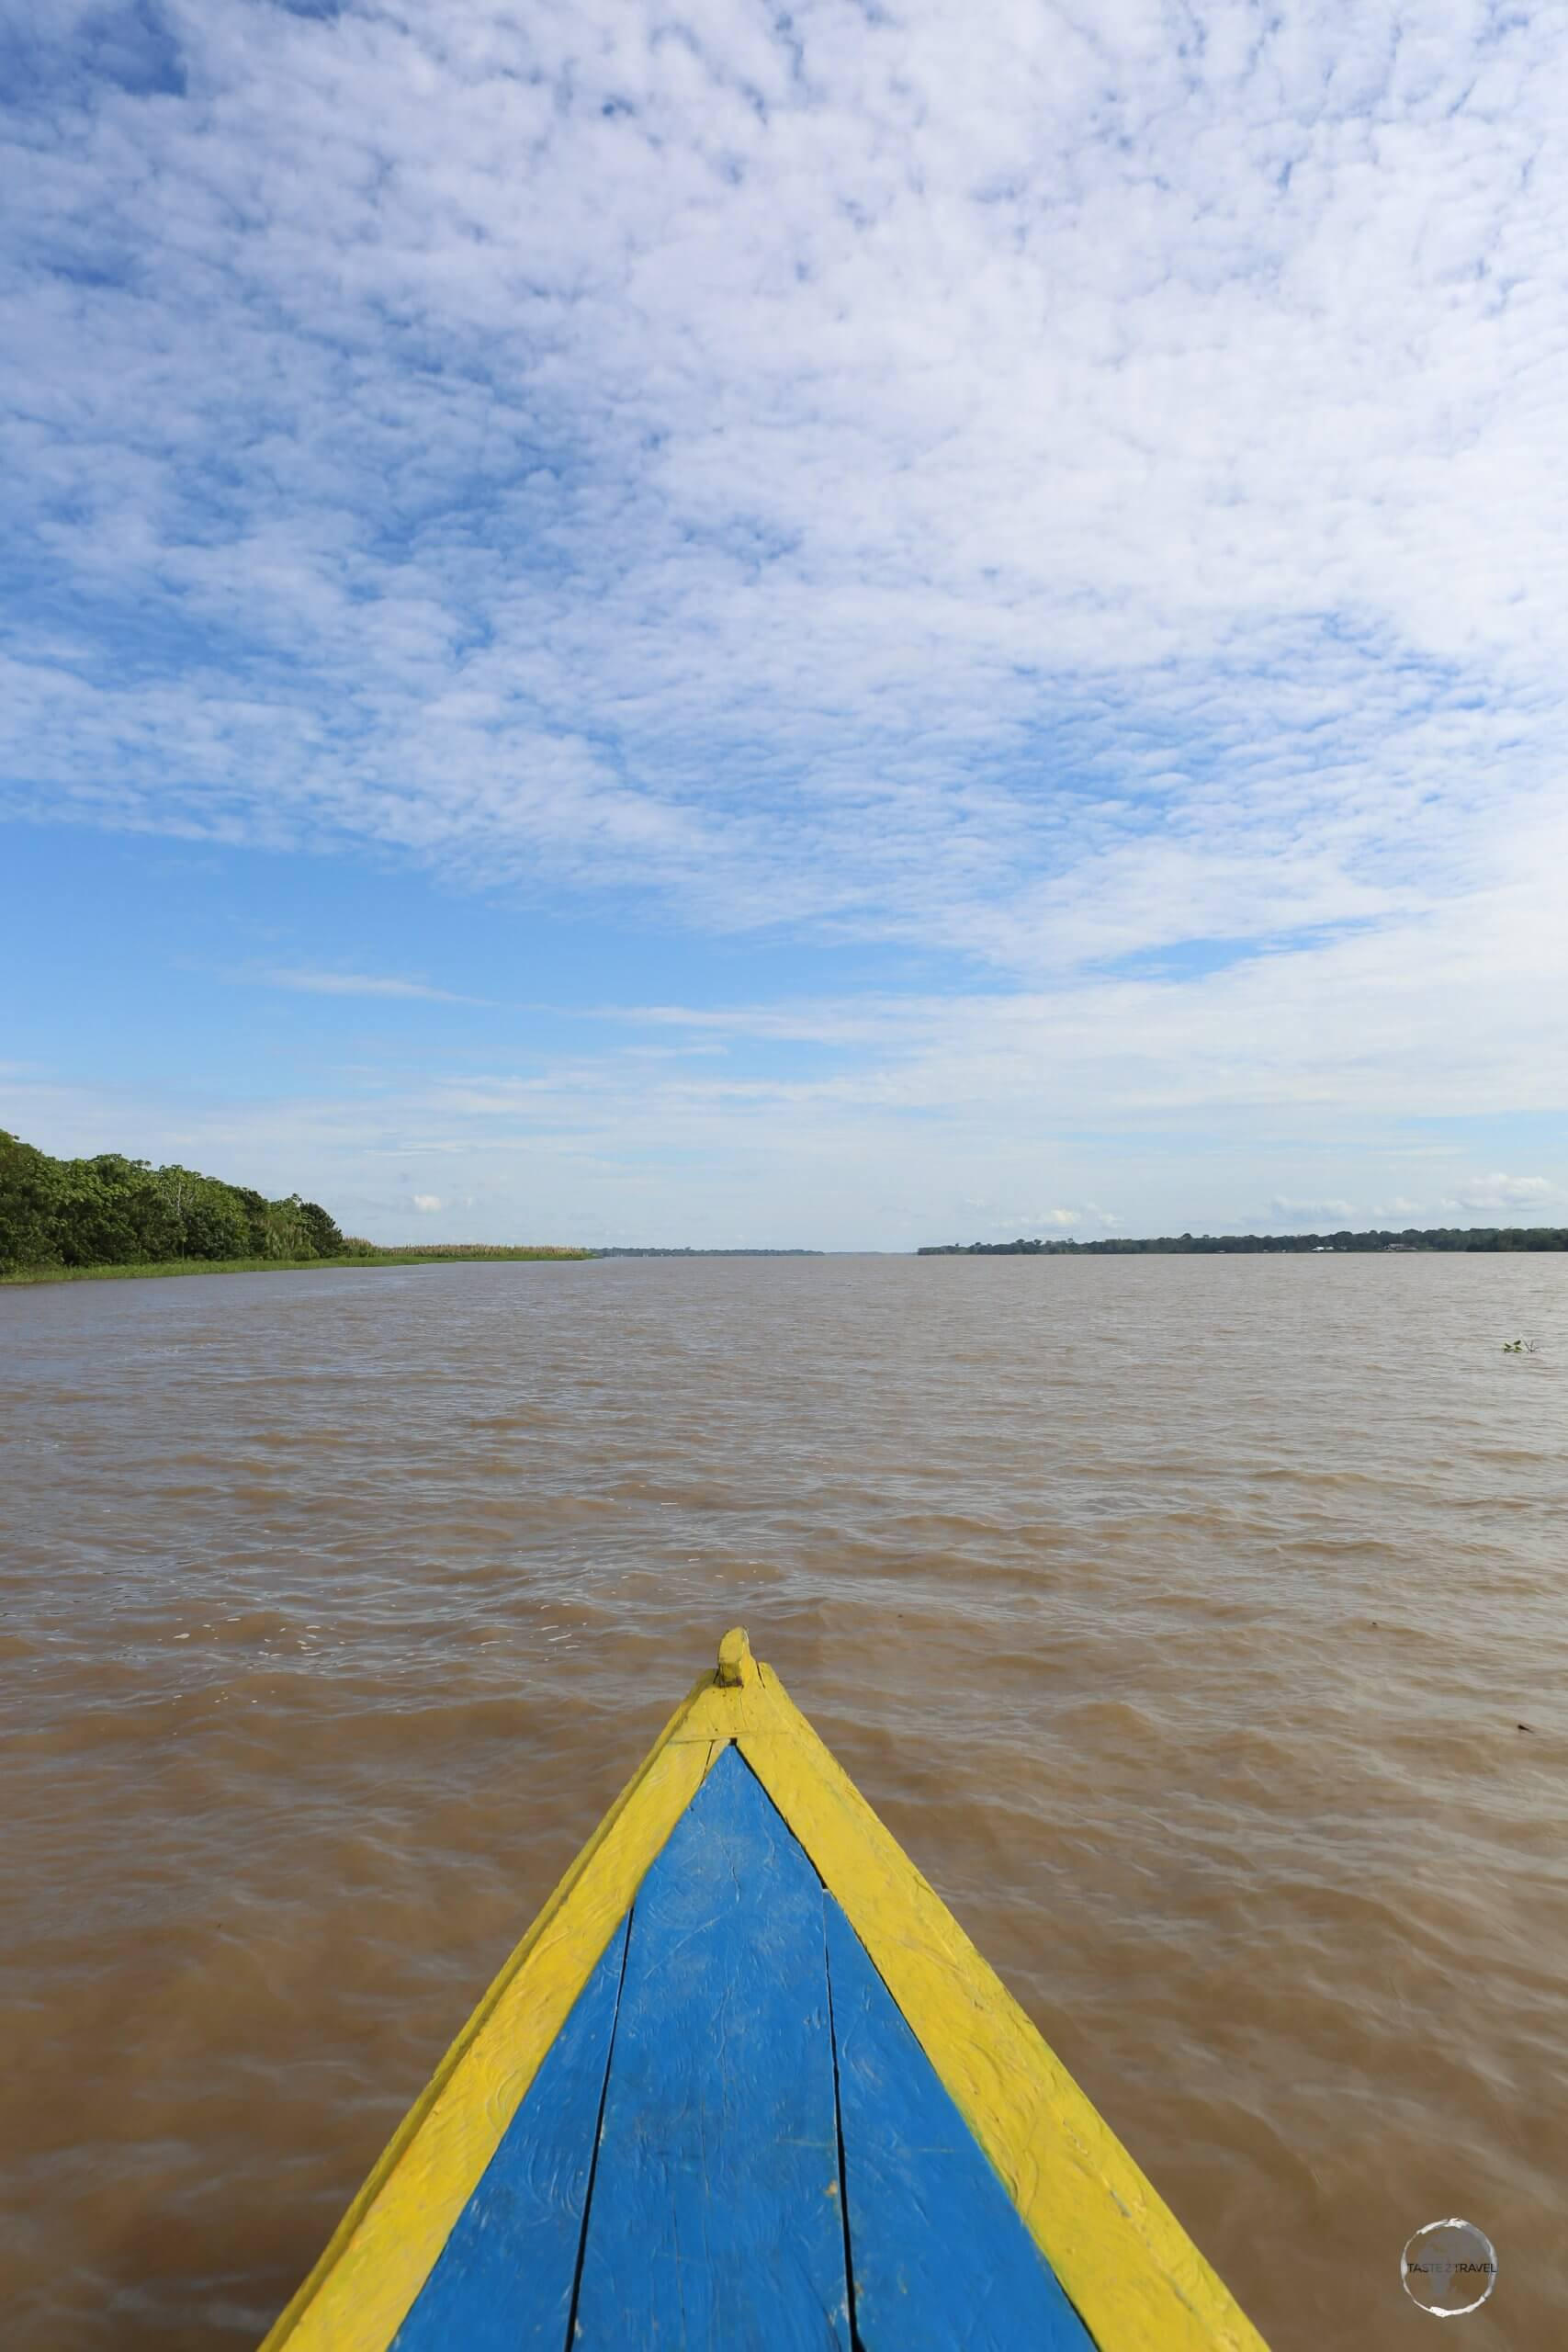 Travelling along the Amazon river in the Tres Fronteras region, with Peru on the left and Colombia on the right.